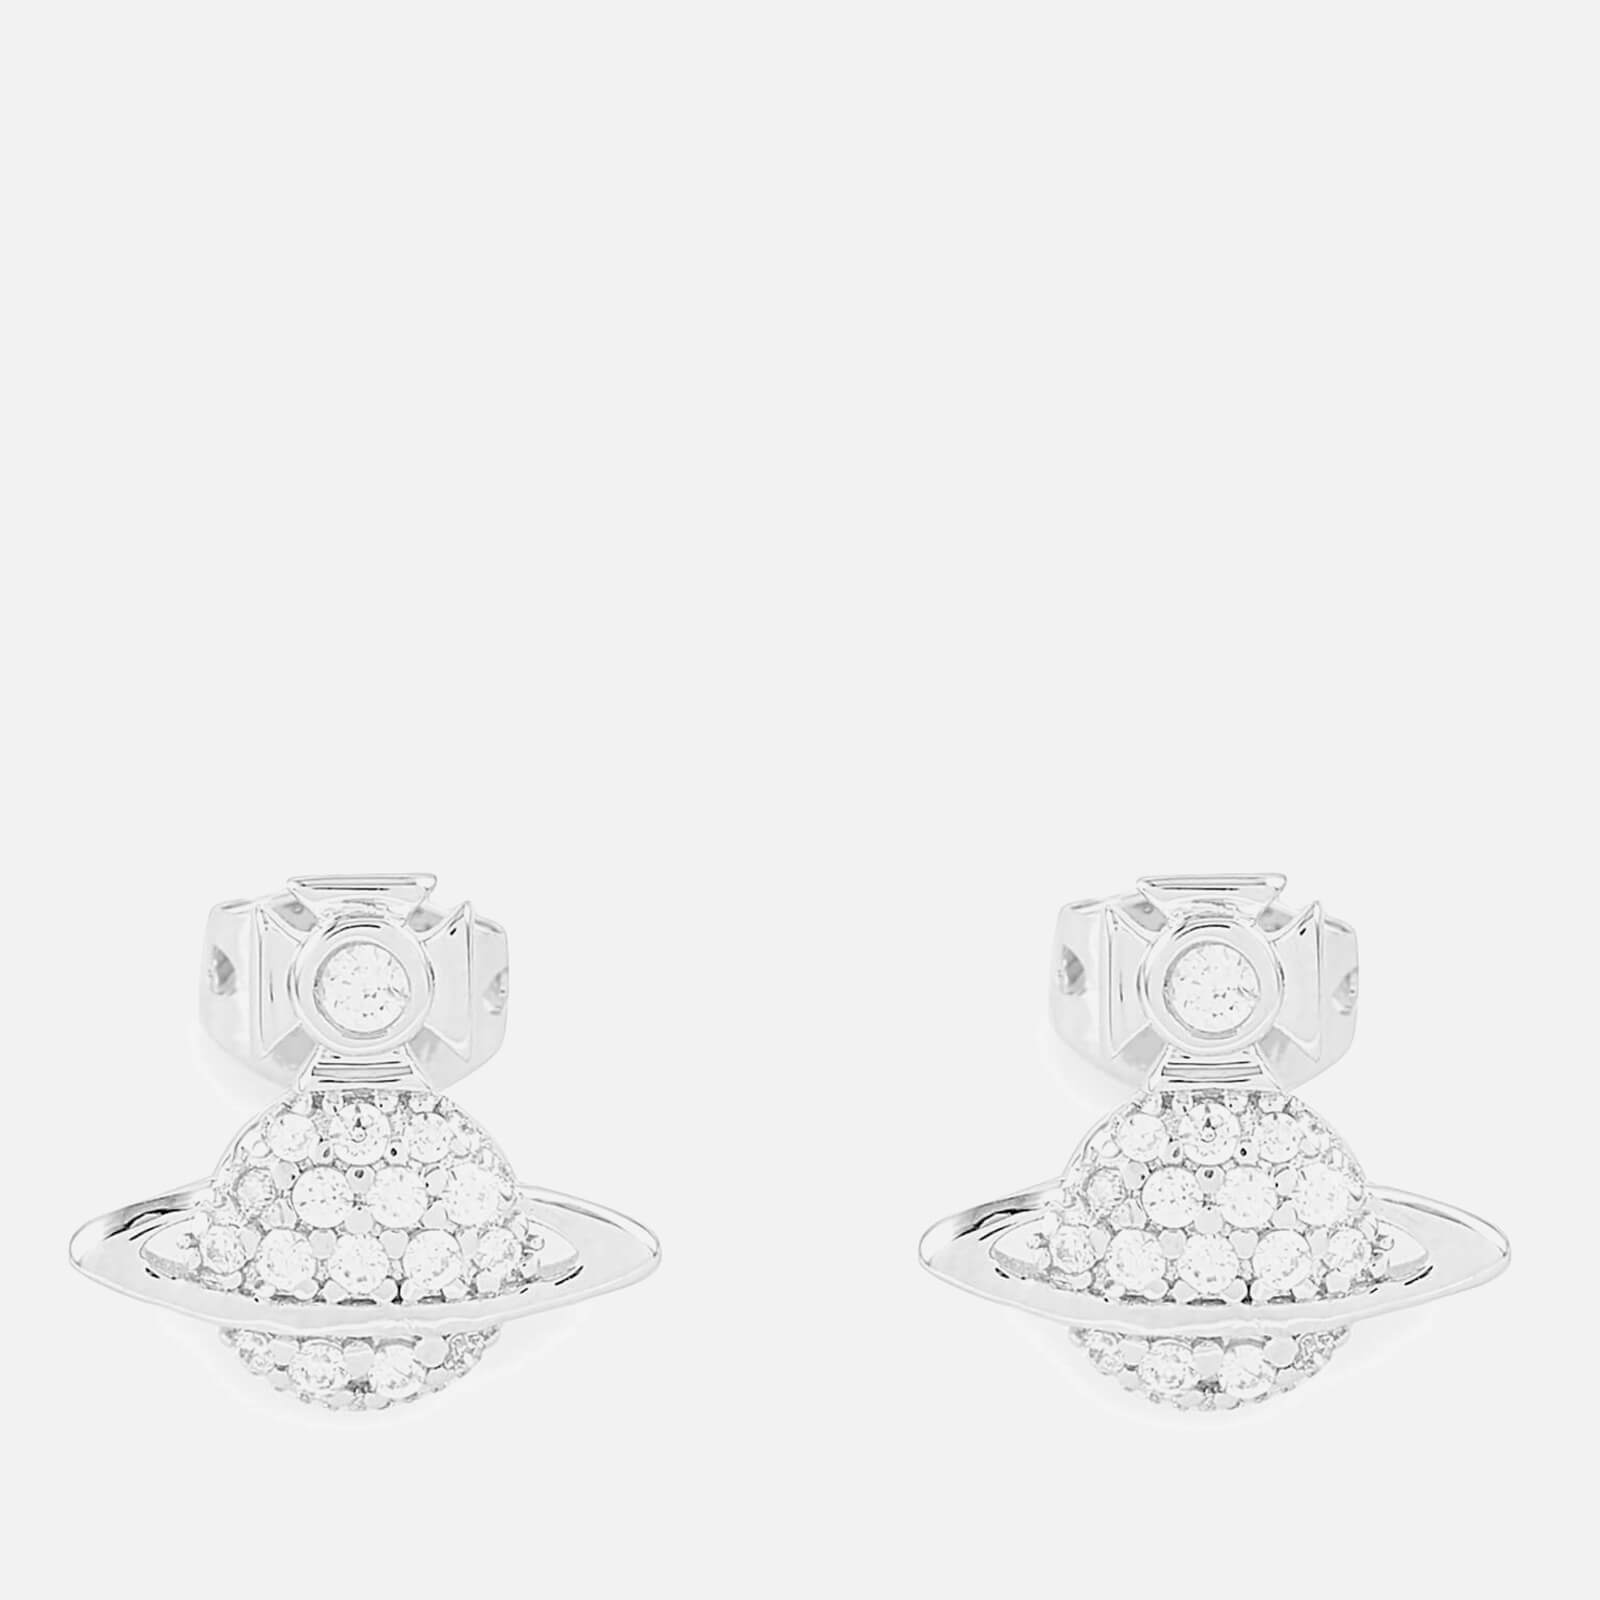 ef9a1e2893e Vivienne Westwood Women's Tamia Earrings - White Cubic Rhodium - Free UK  Delivery over £50